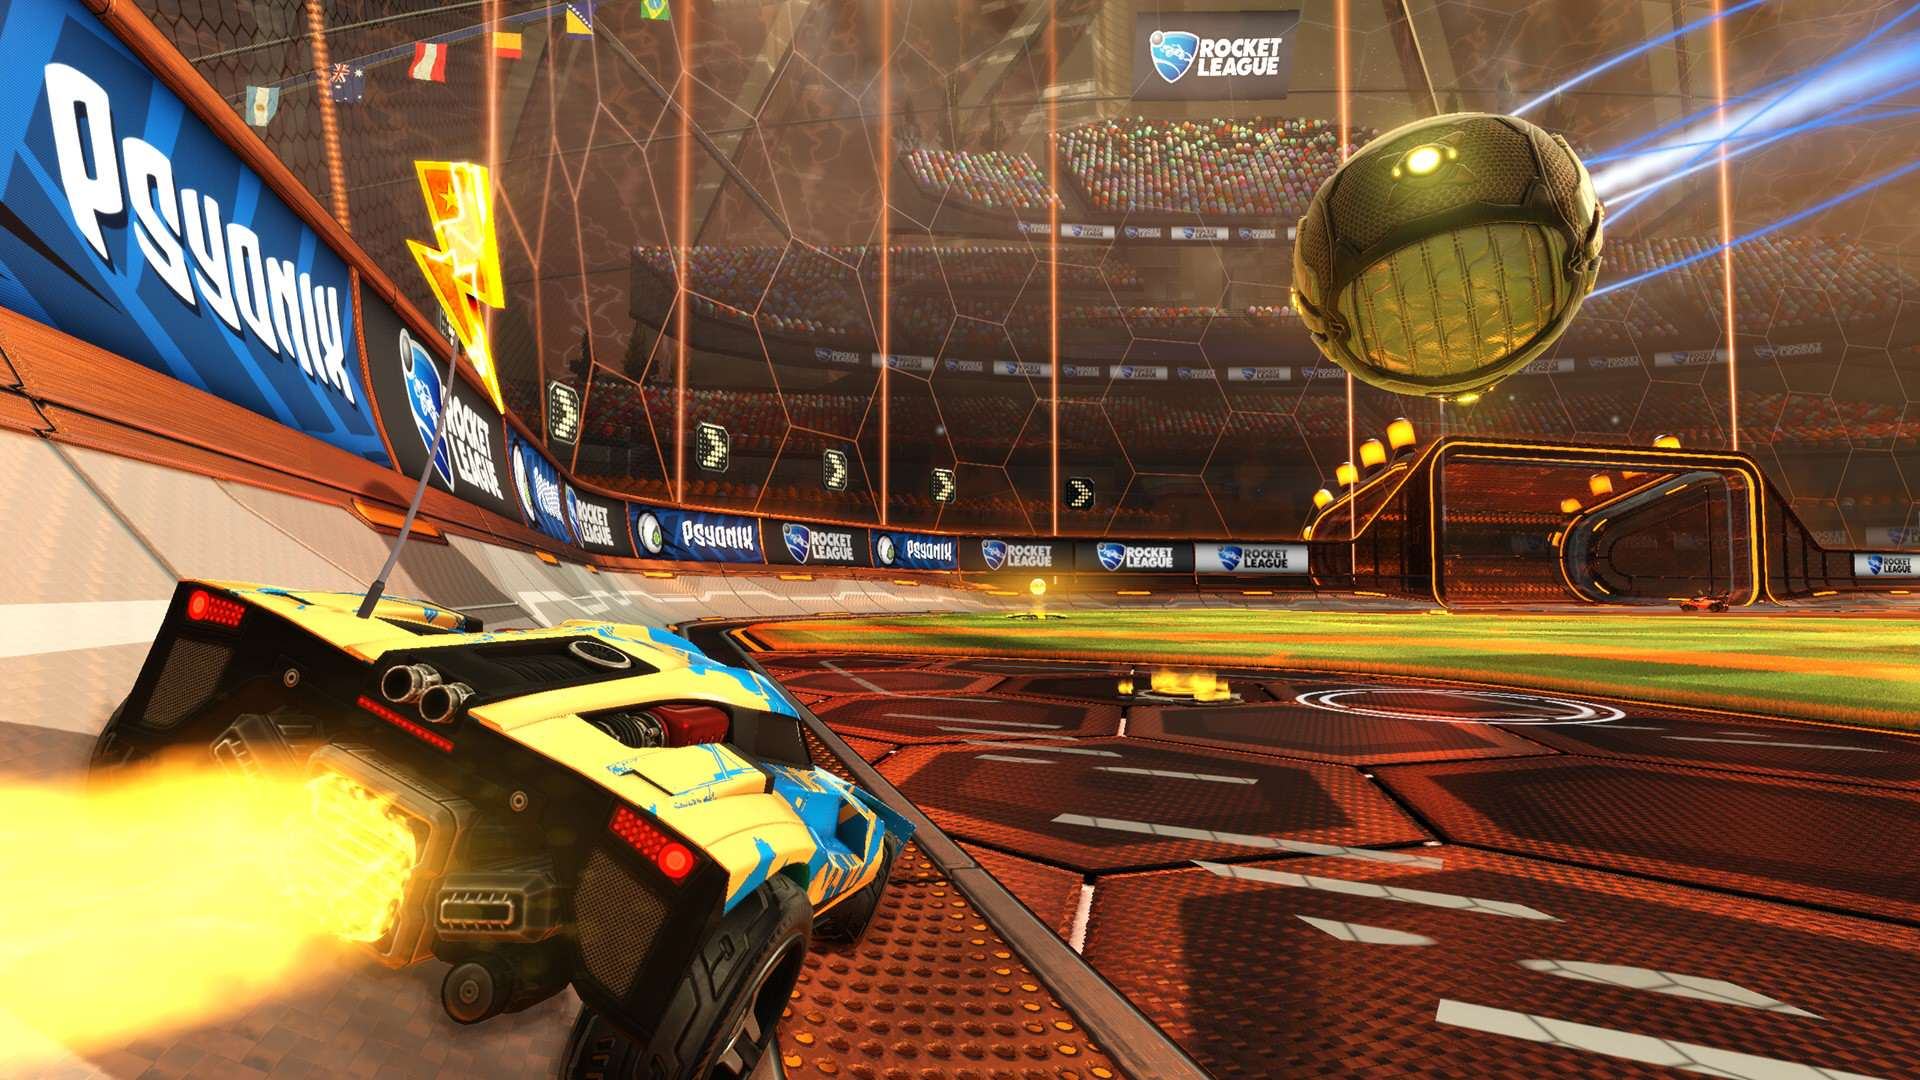 670 2 Rocket League Dev Discusses Xbox One/PS4 Cross Play